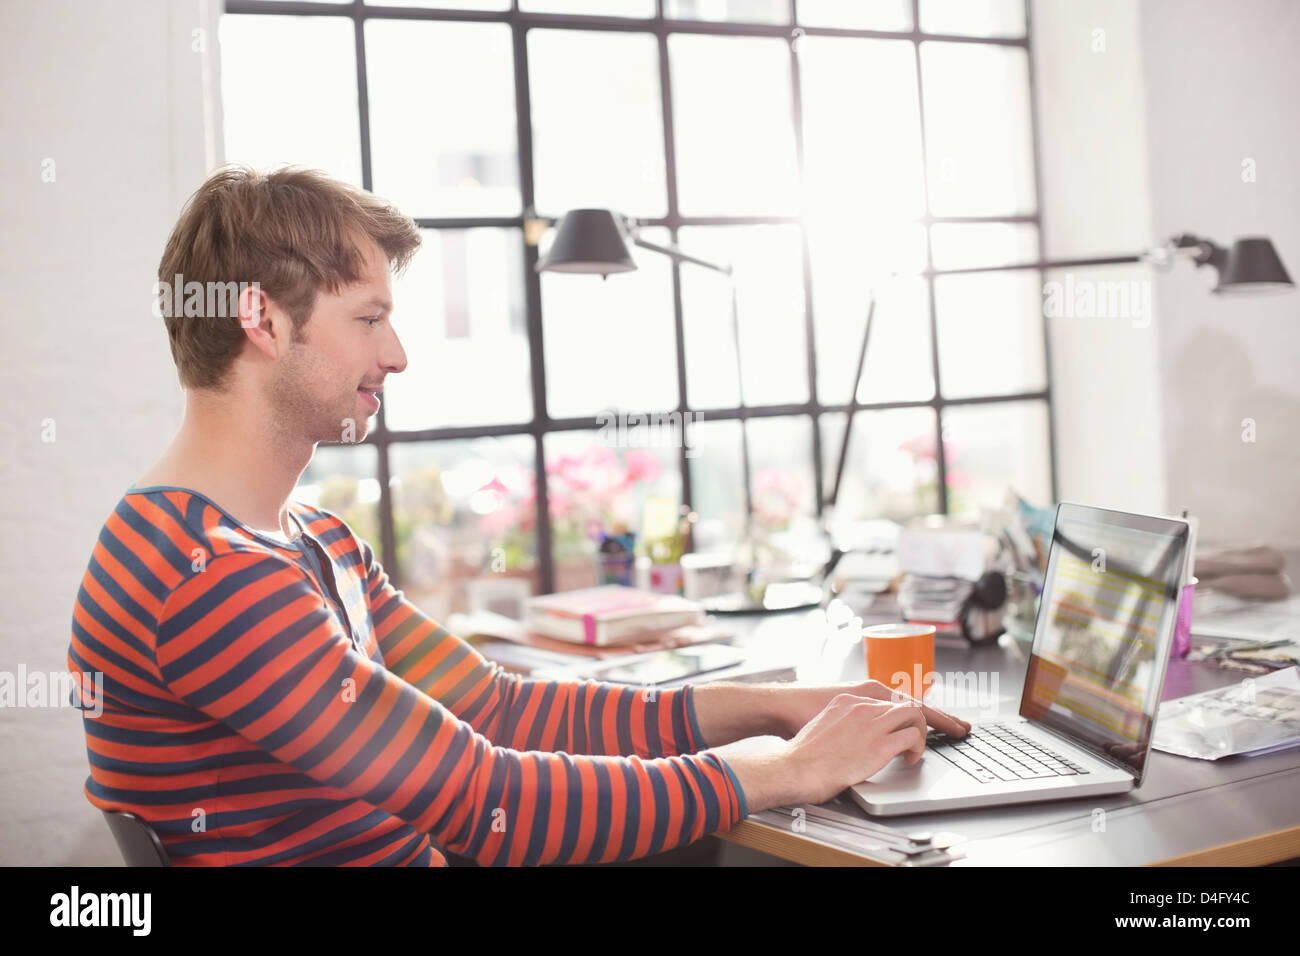 Man at desk Photo Stock